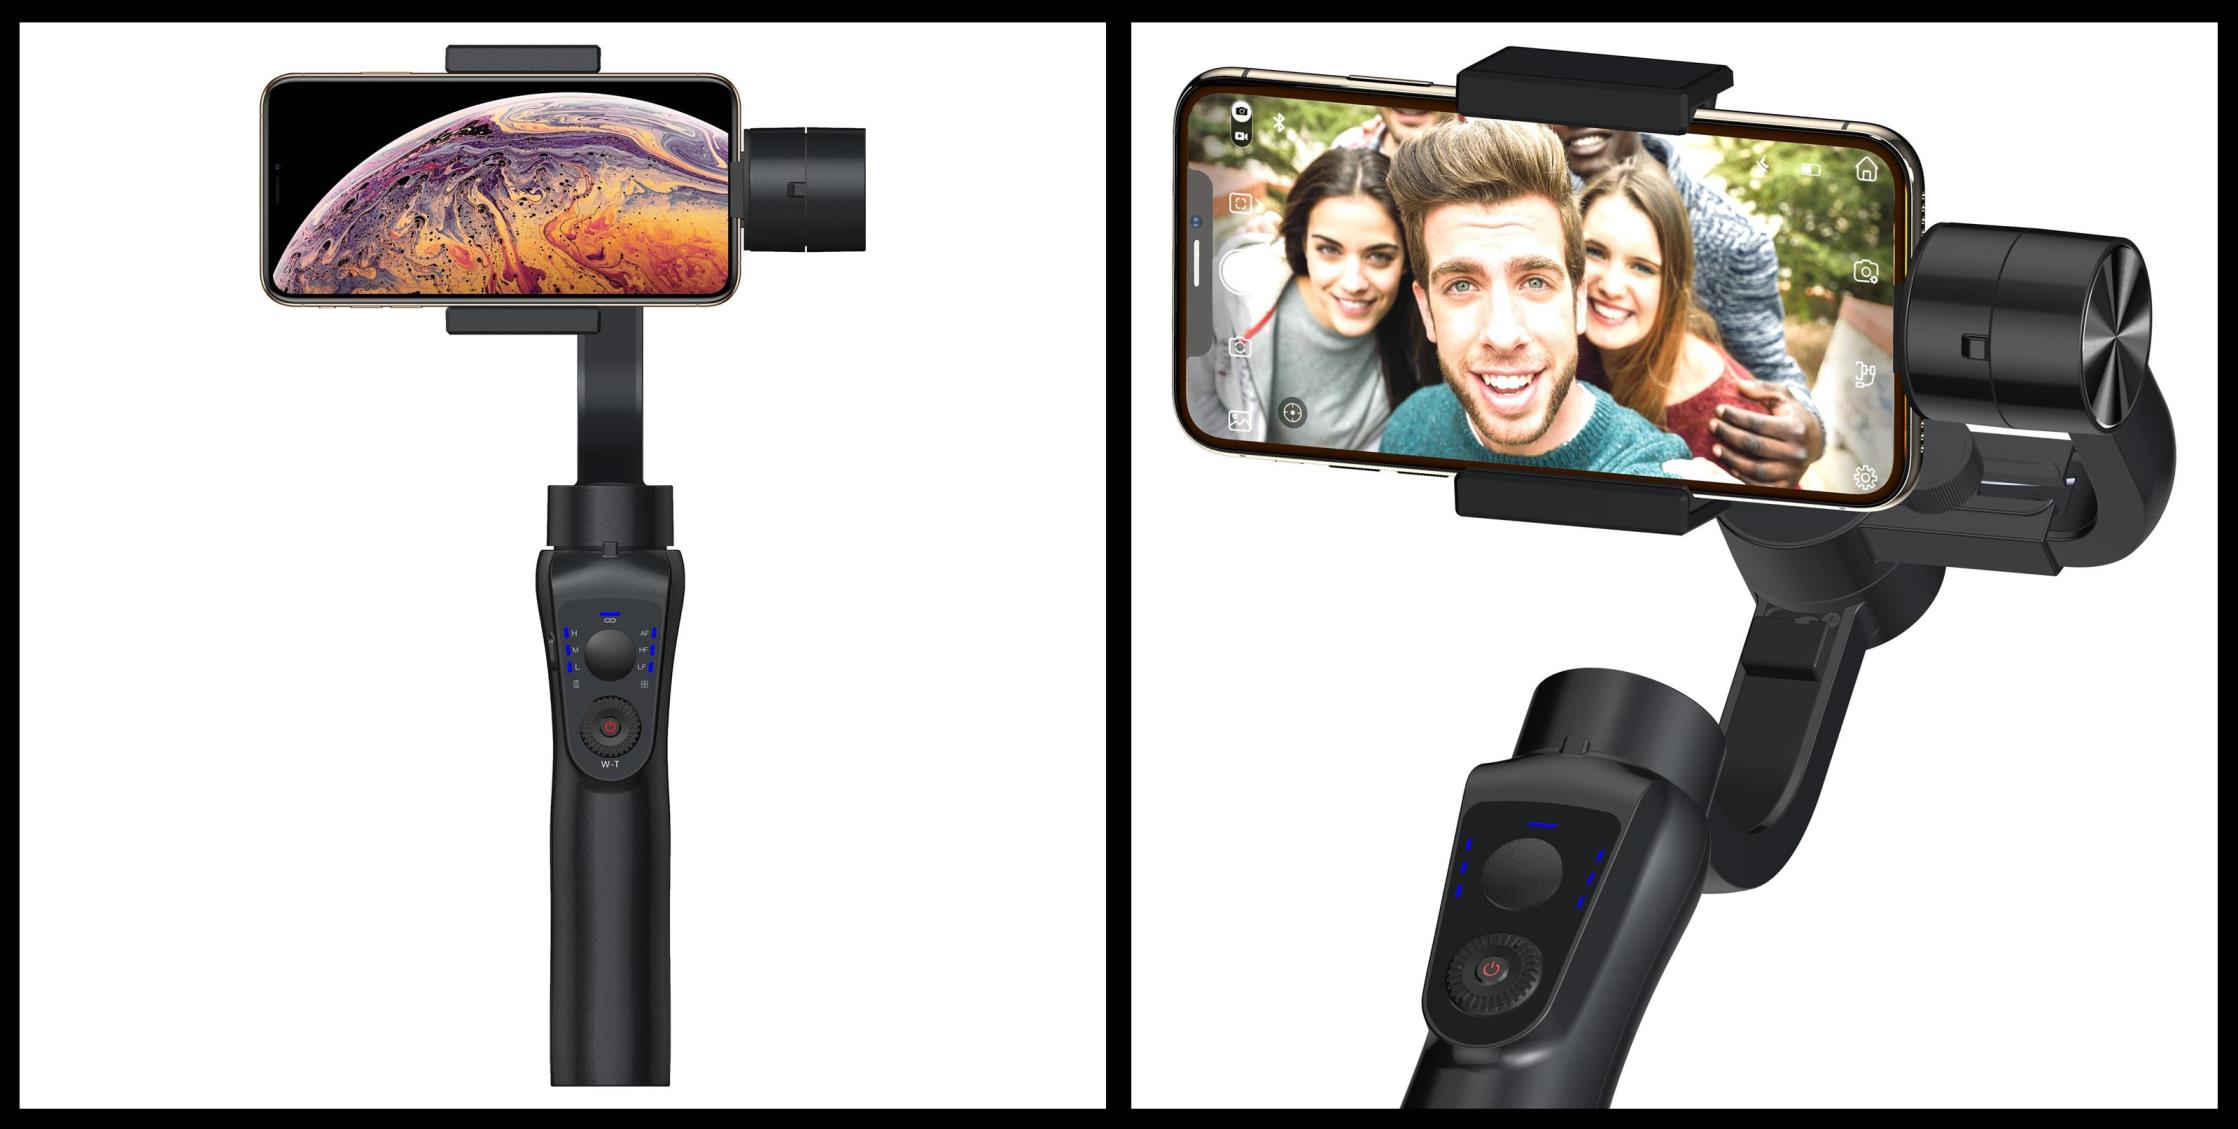 noziroh-gimbal-smartphone-stabilizer-android-ios-time-lapse-face-tracker-selfie-panorama-black